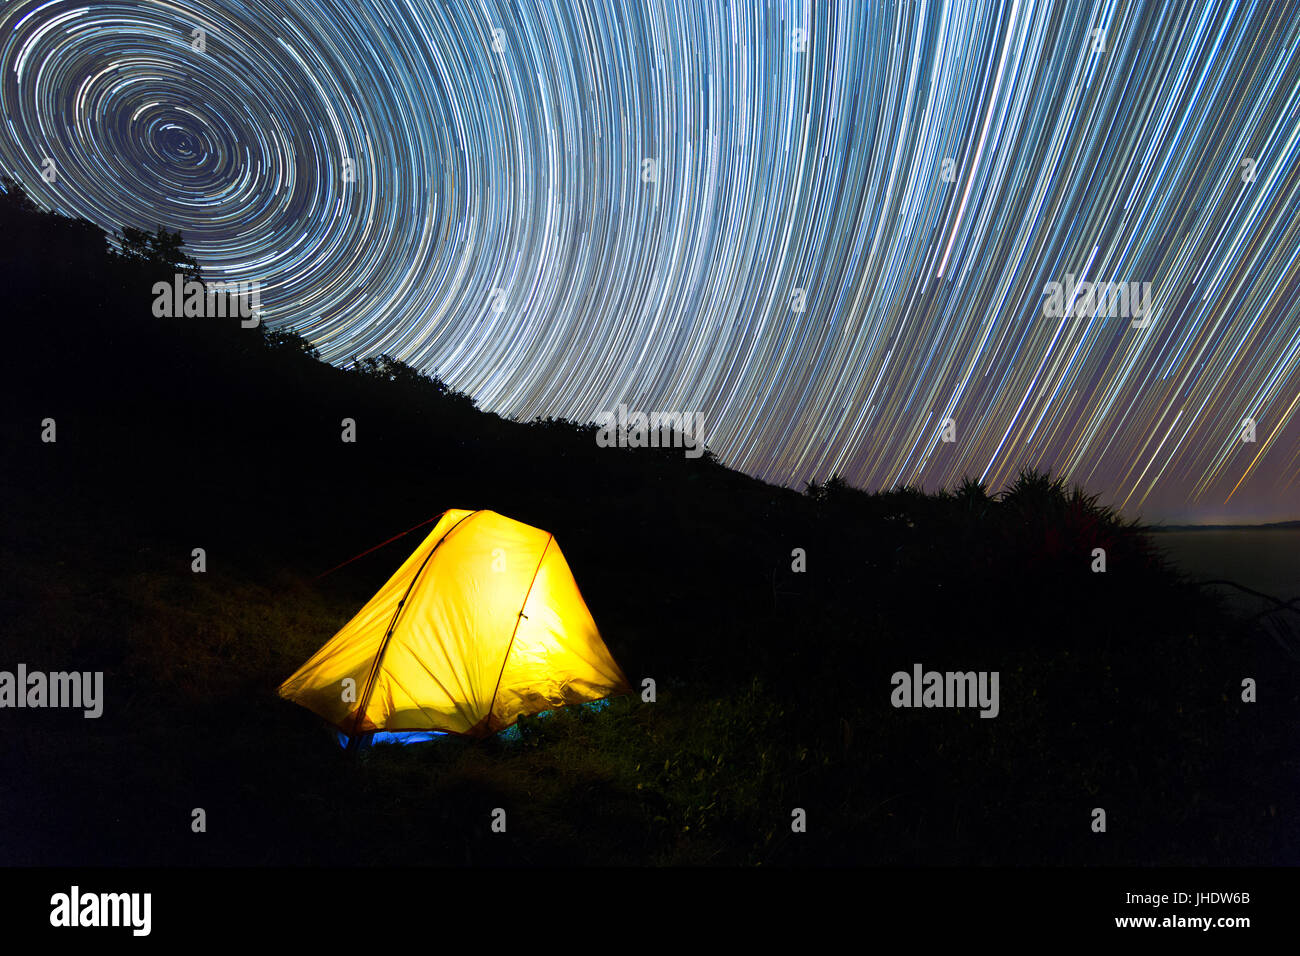 A yellow hiking tent illuminated with light under a beautiful night sky star trail. Stock Photo